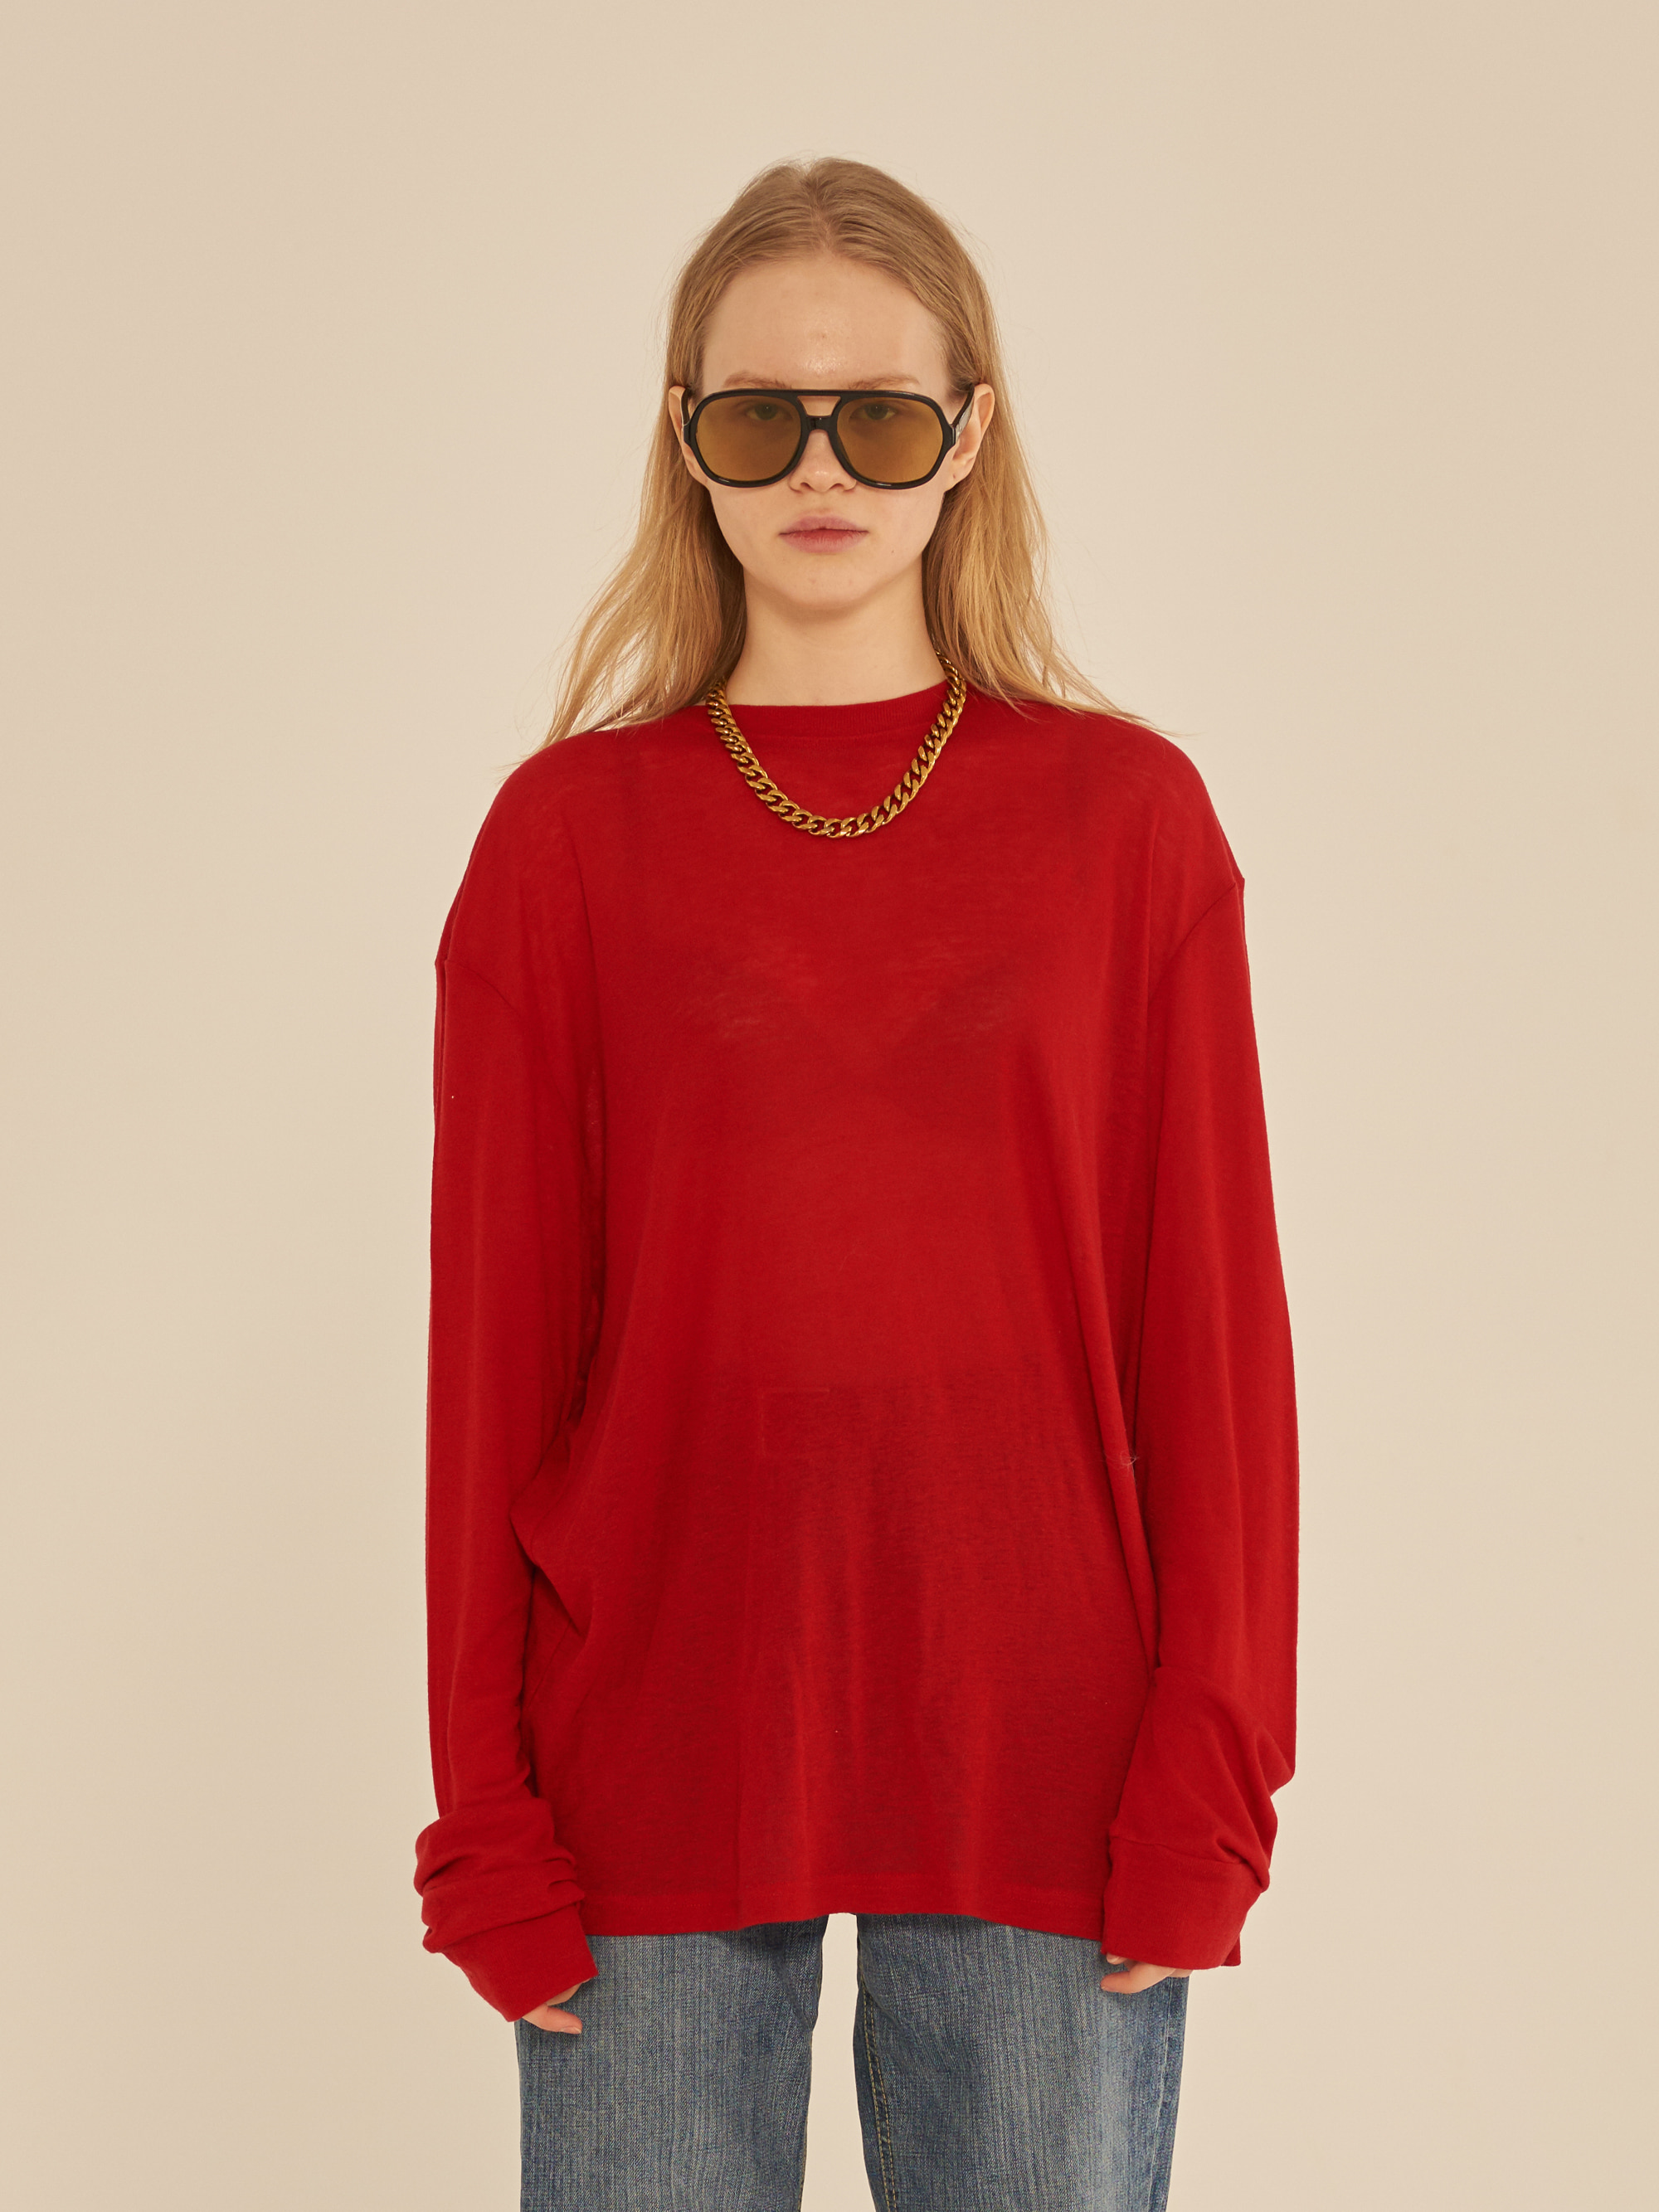 LONG SLEEVE SEE-THROUGH T-SHIRT (RED)